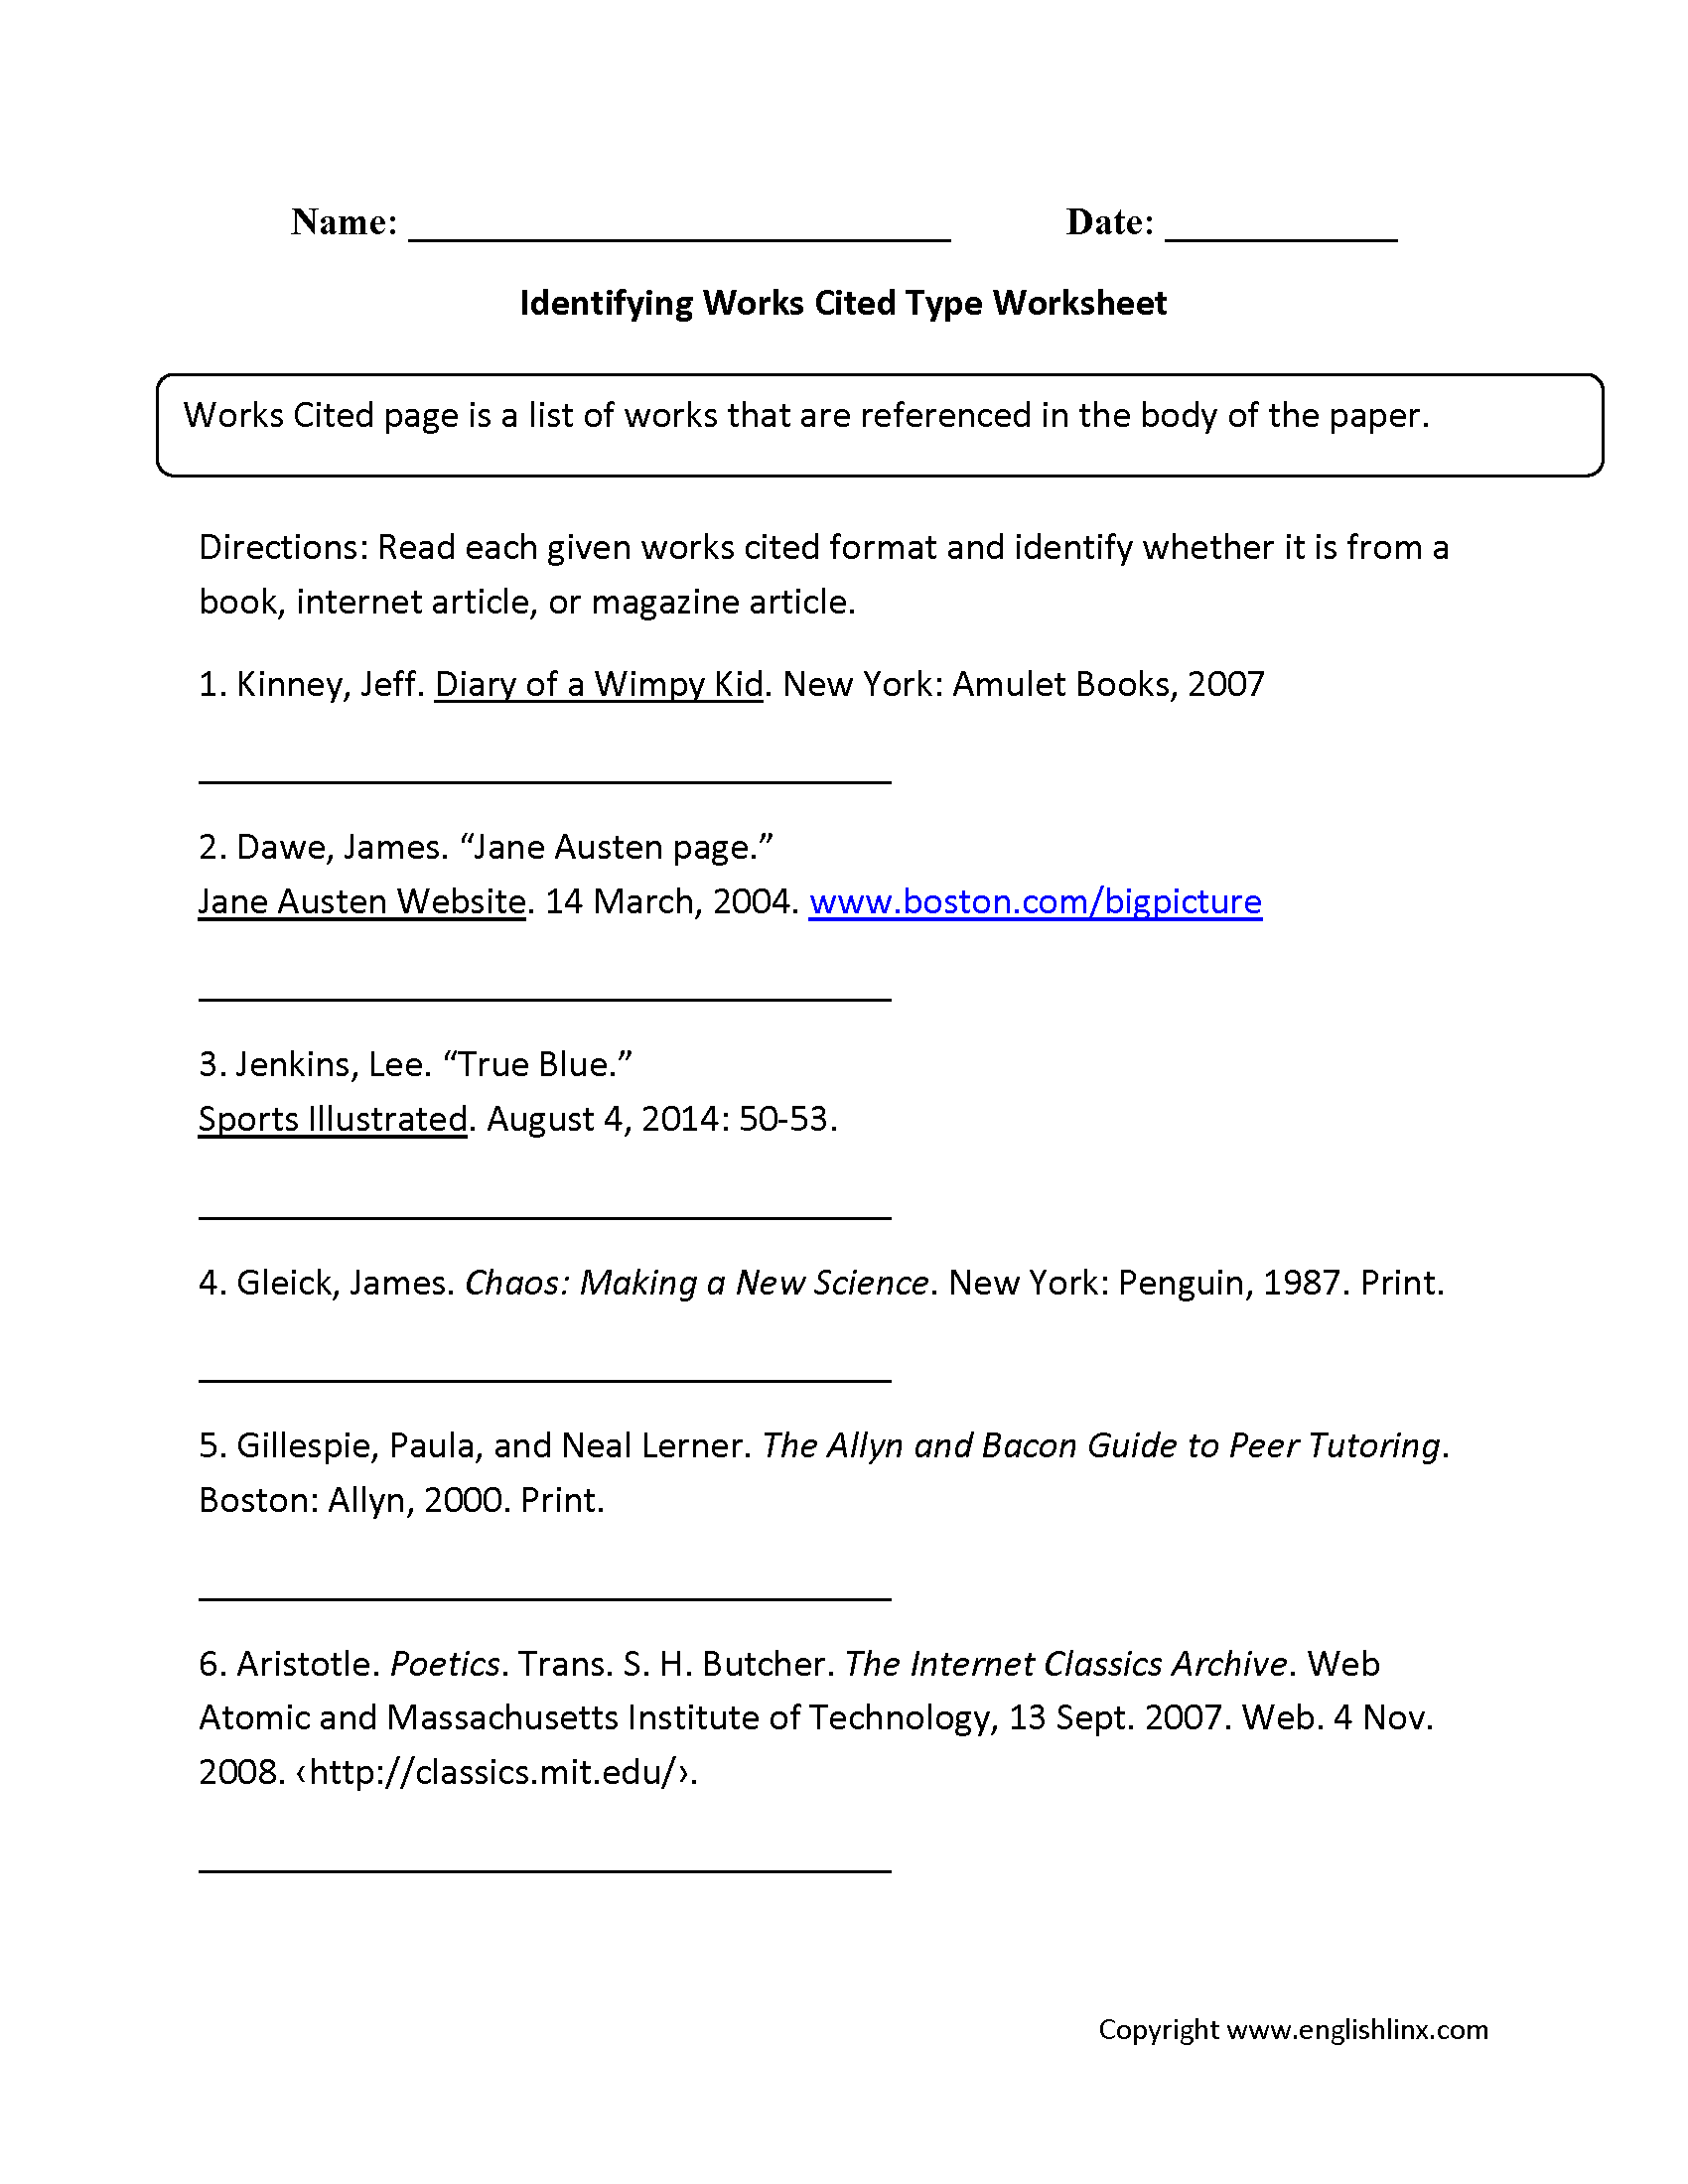 worksheet Citation Worksheet englishlinx com works cited worksheets worksheets